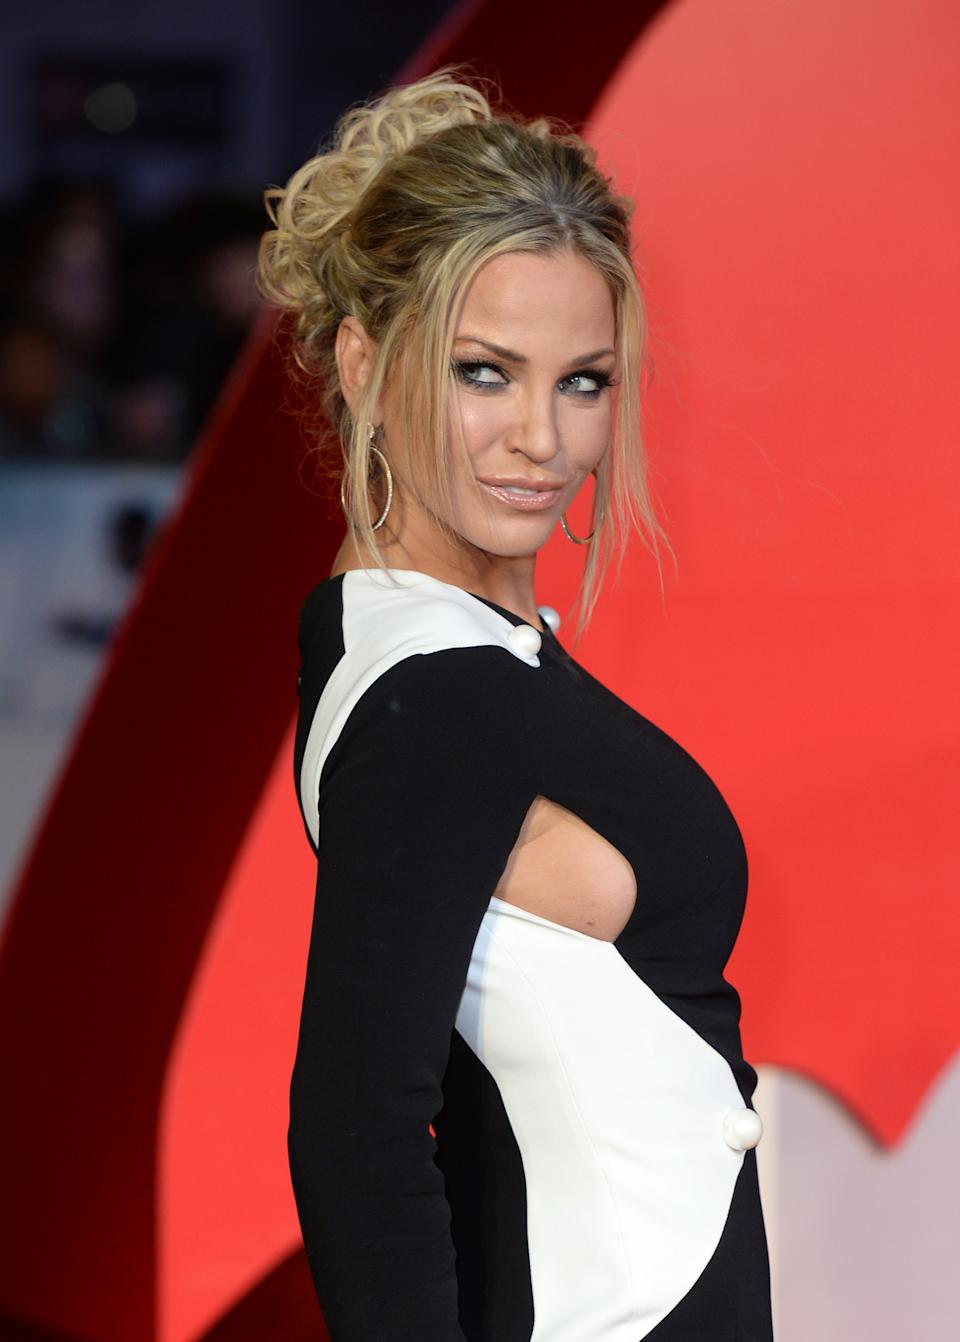 Sarah Harding attending the European Premiere of Batman v Superman: Dawn Of Justice in Leicester Square, London.